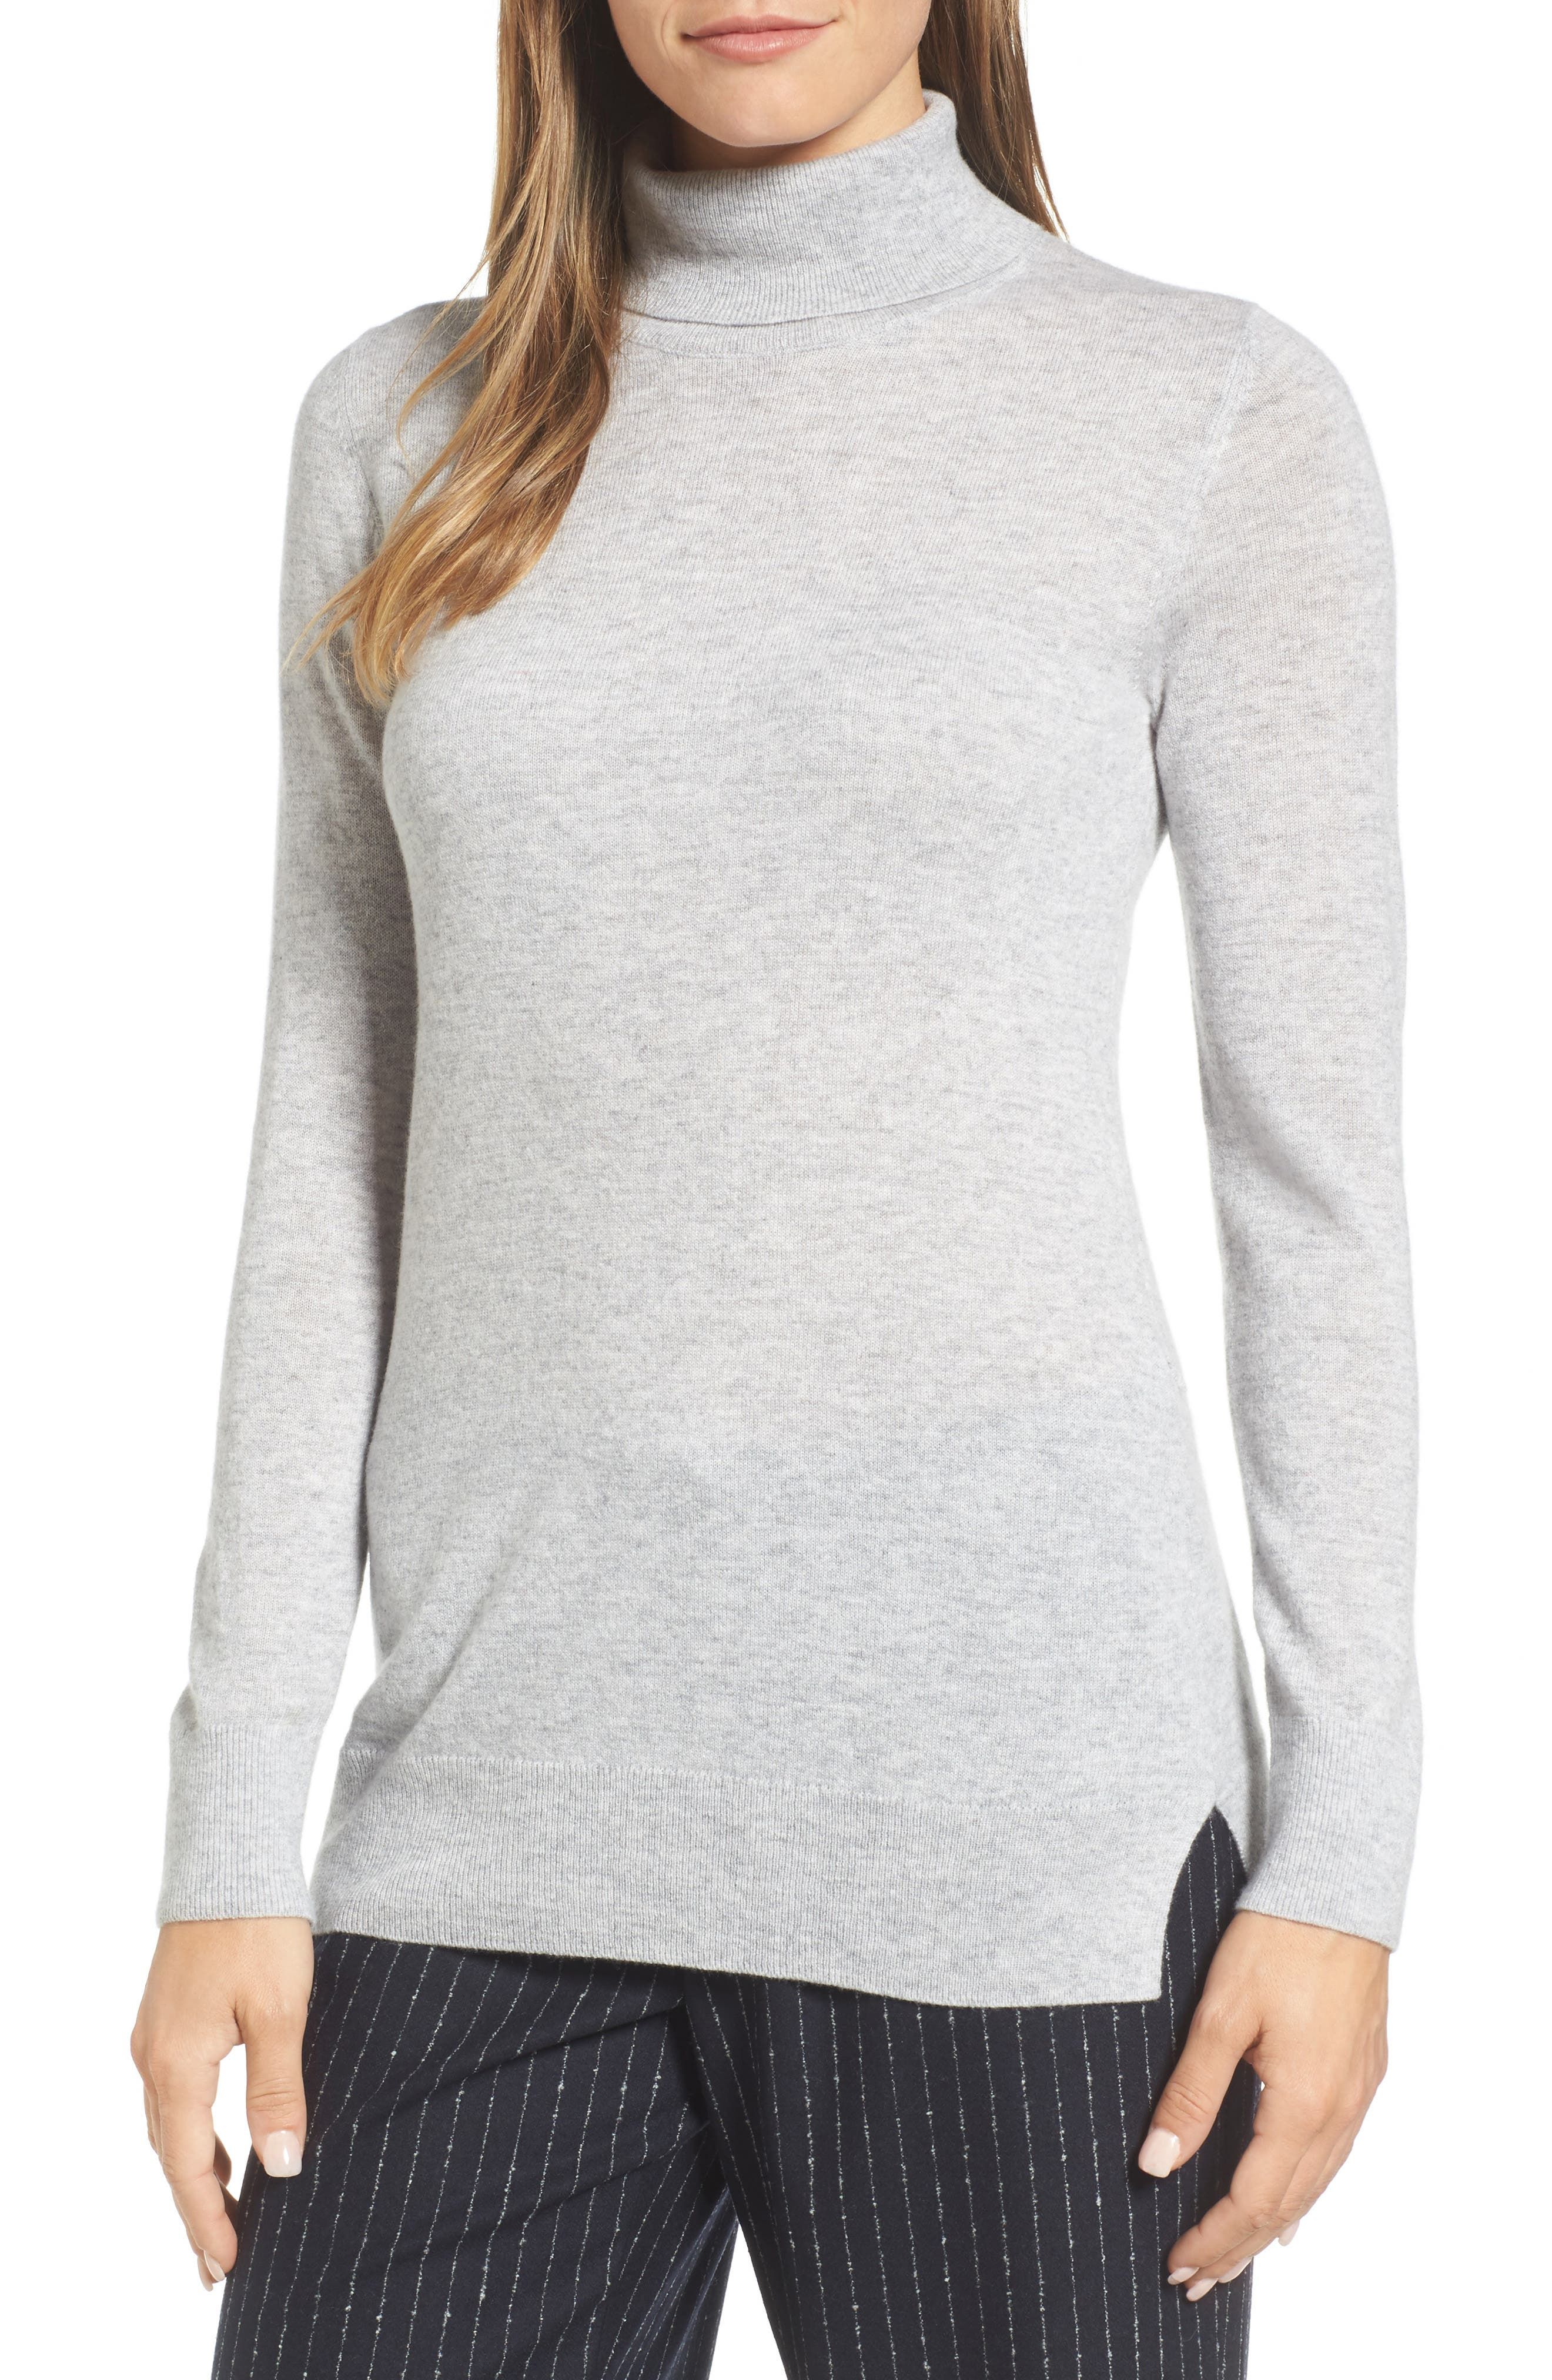 Nordstrom Signature Turtleneck Cashmere Sweater